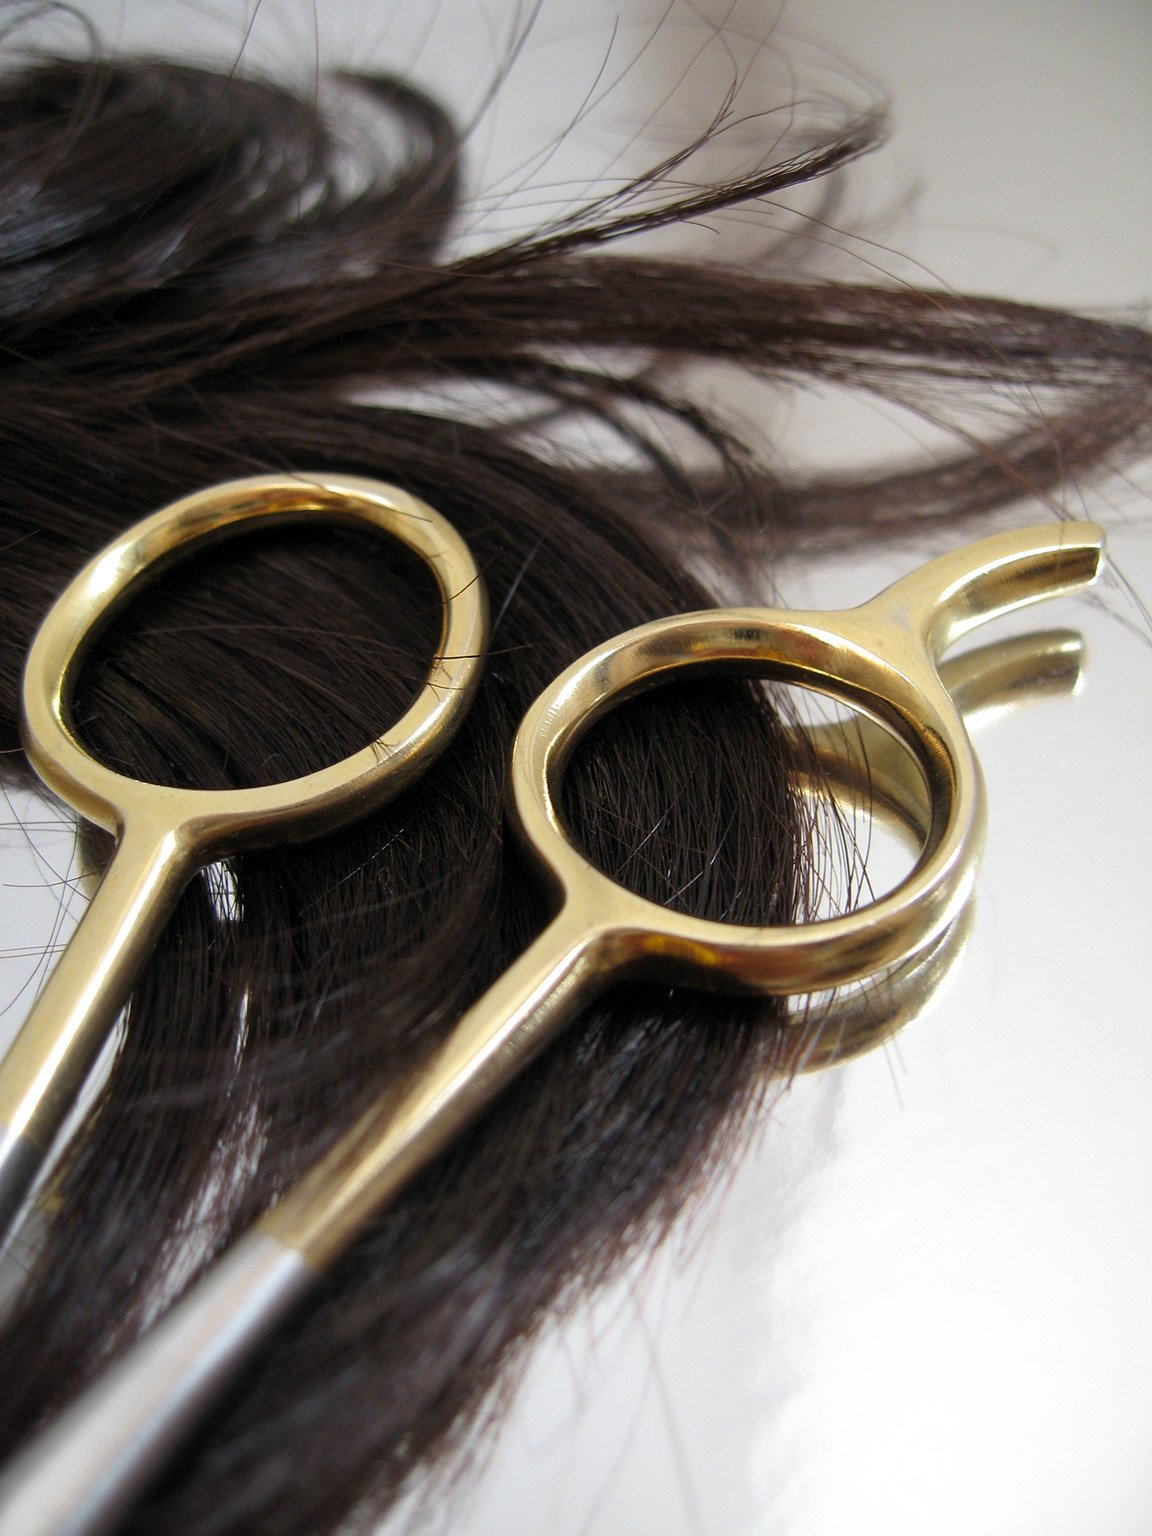 Hair & Scissors at Lada Salon & Spa in Lawrence, KS